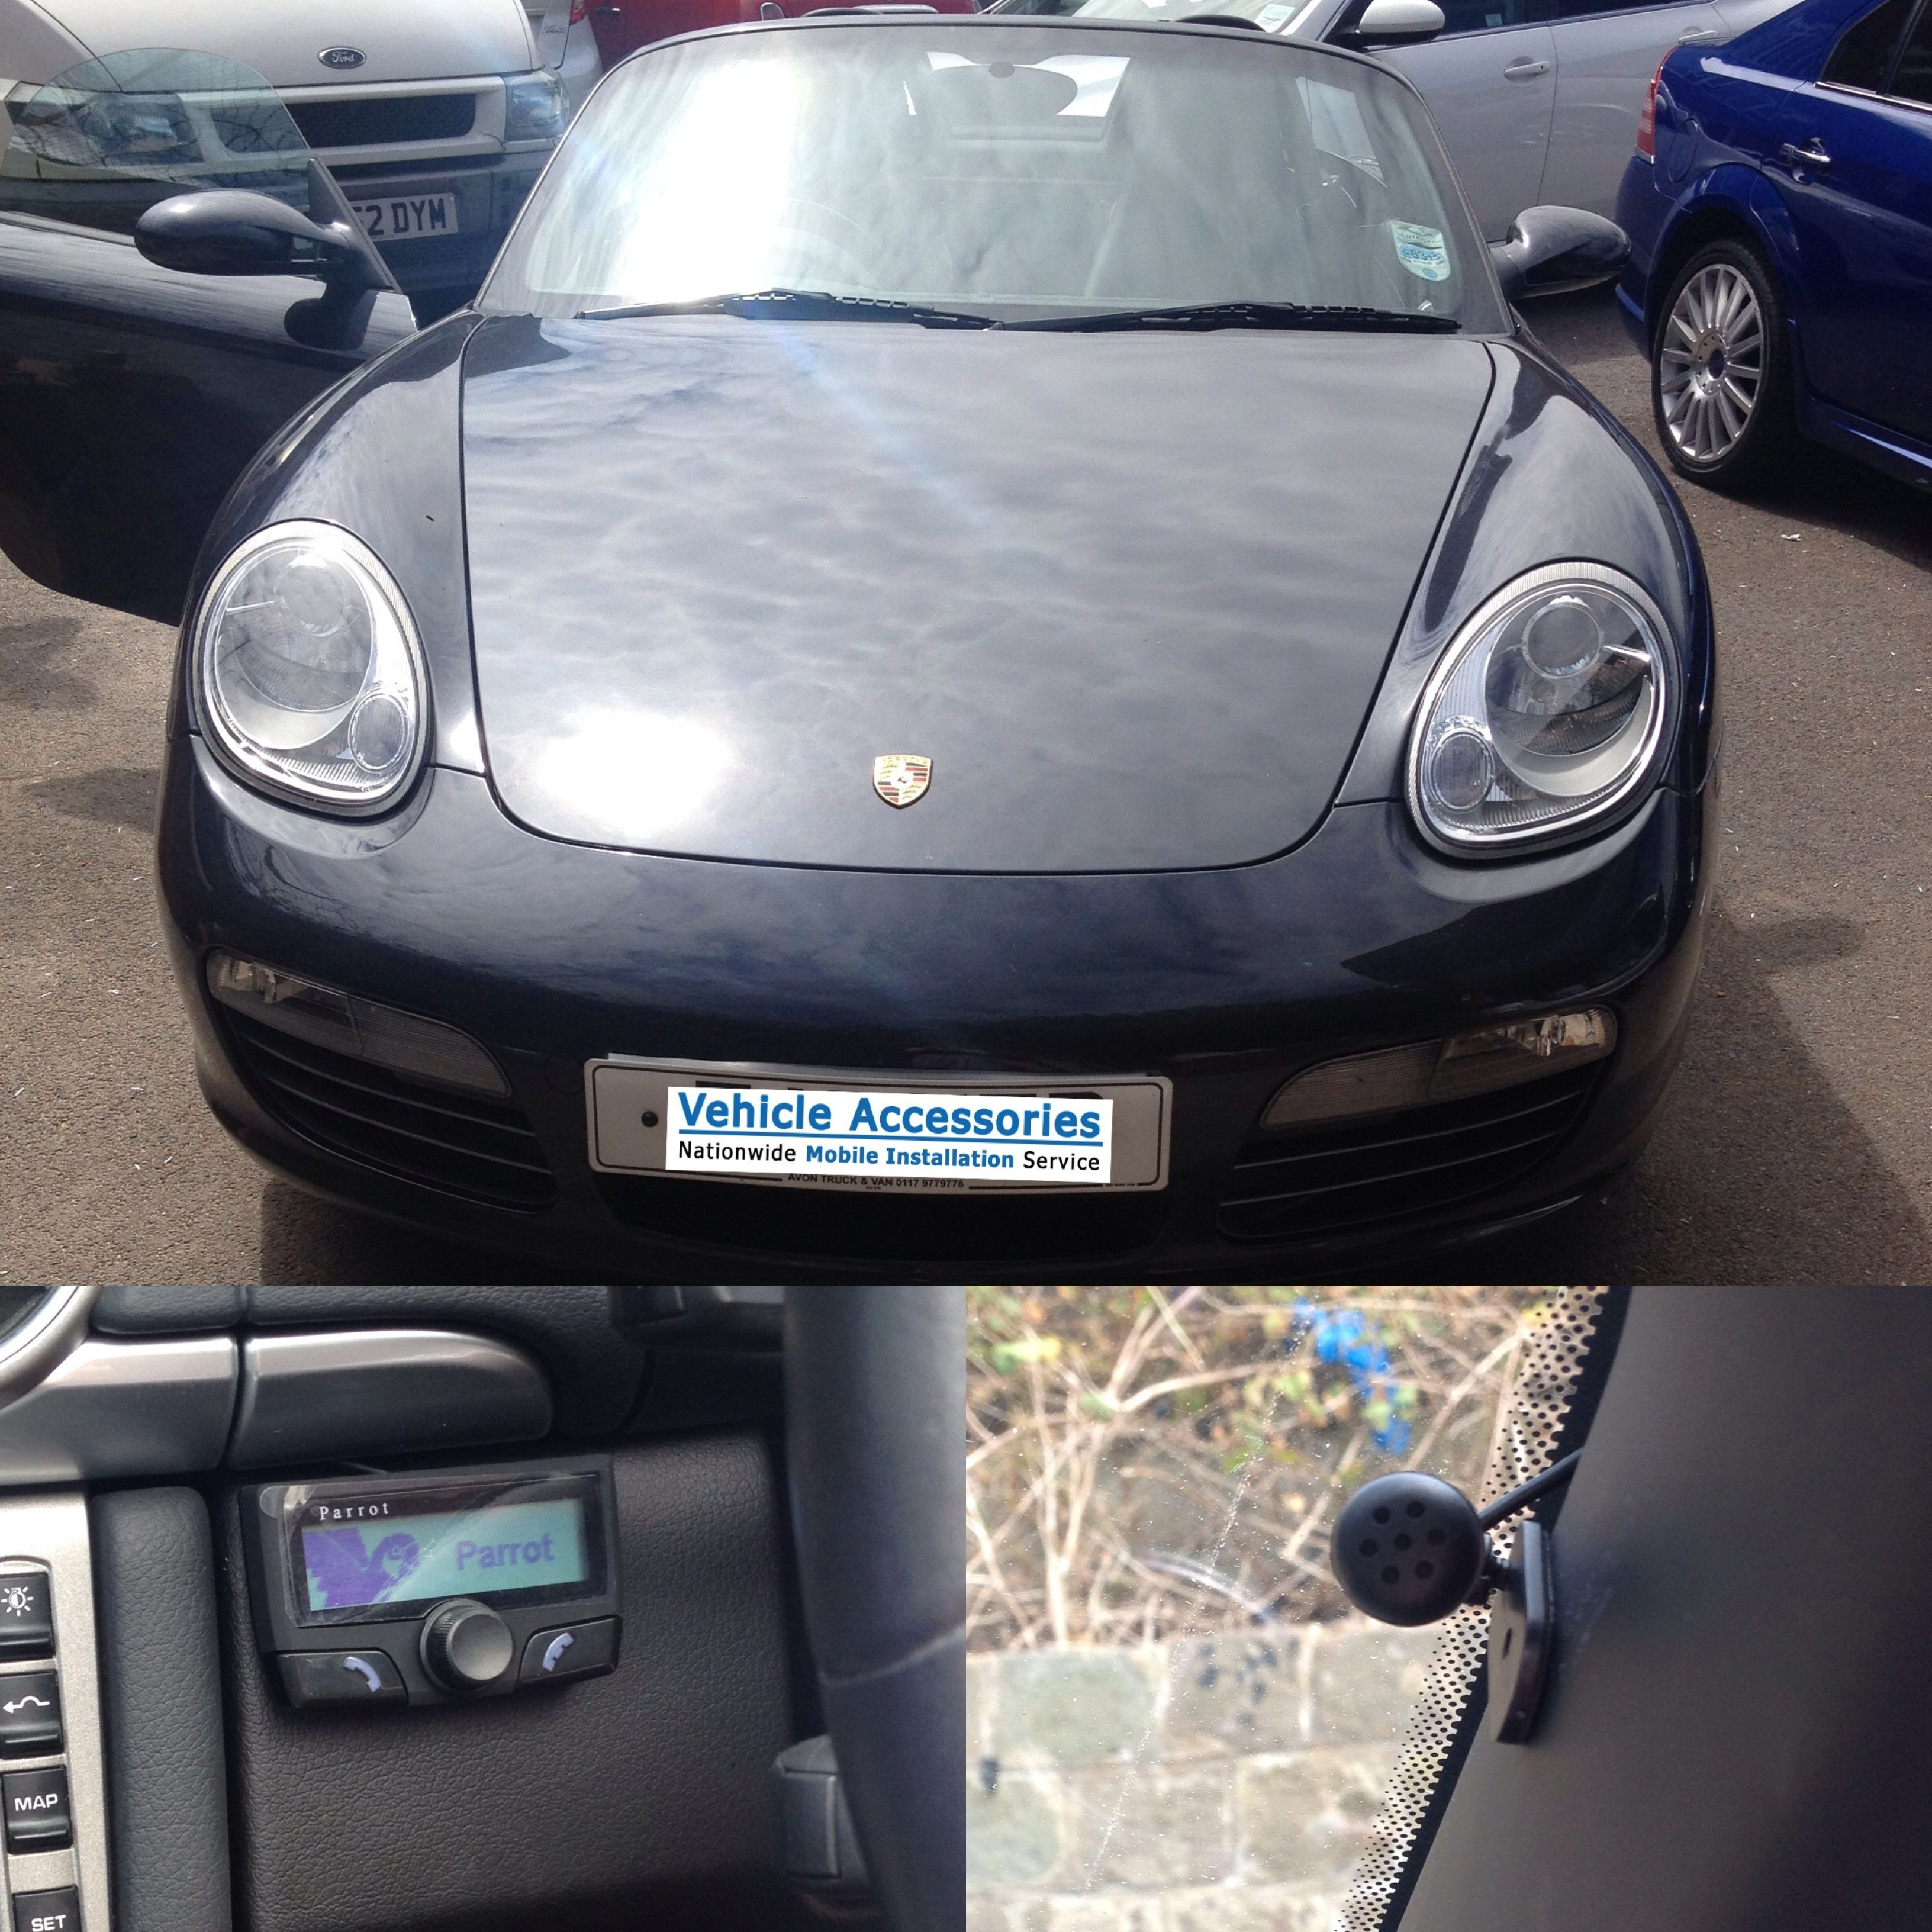 Install of a Parrot CK3100 into a Porsche. https://www.vehicle ...